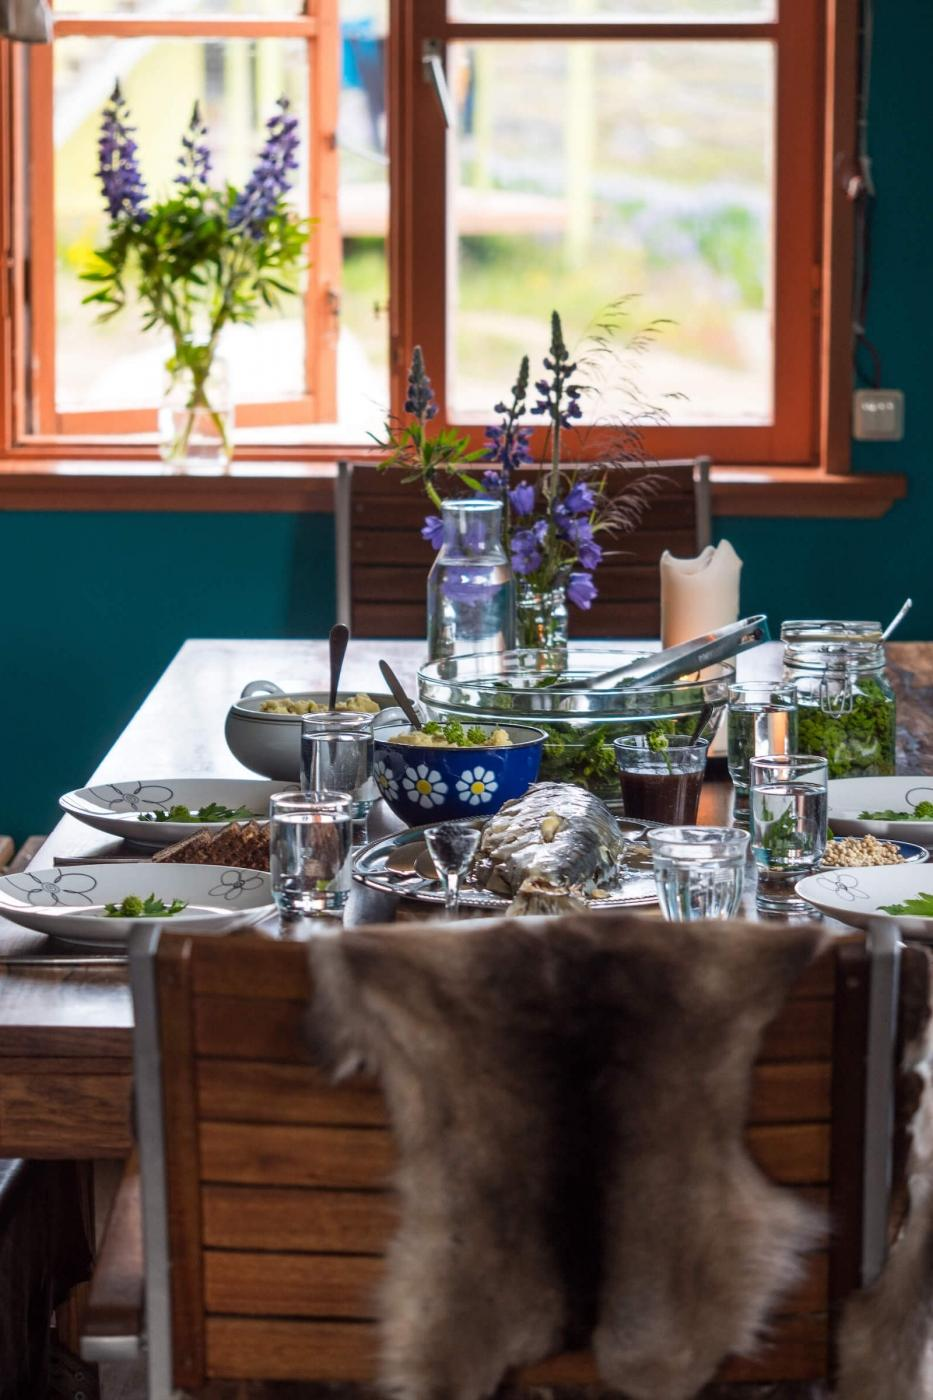 Dinner table with freshly caught fish and a side of local vegetables, plants and herbs.